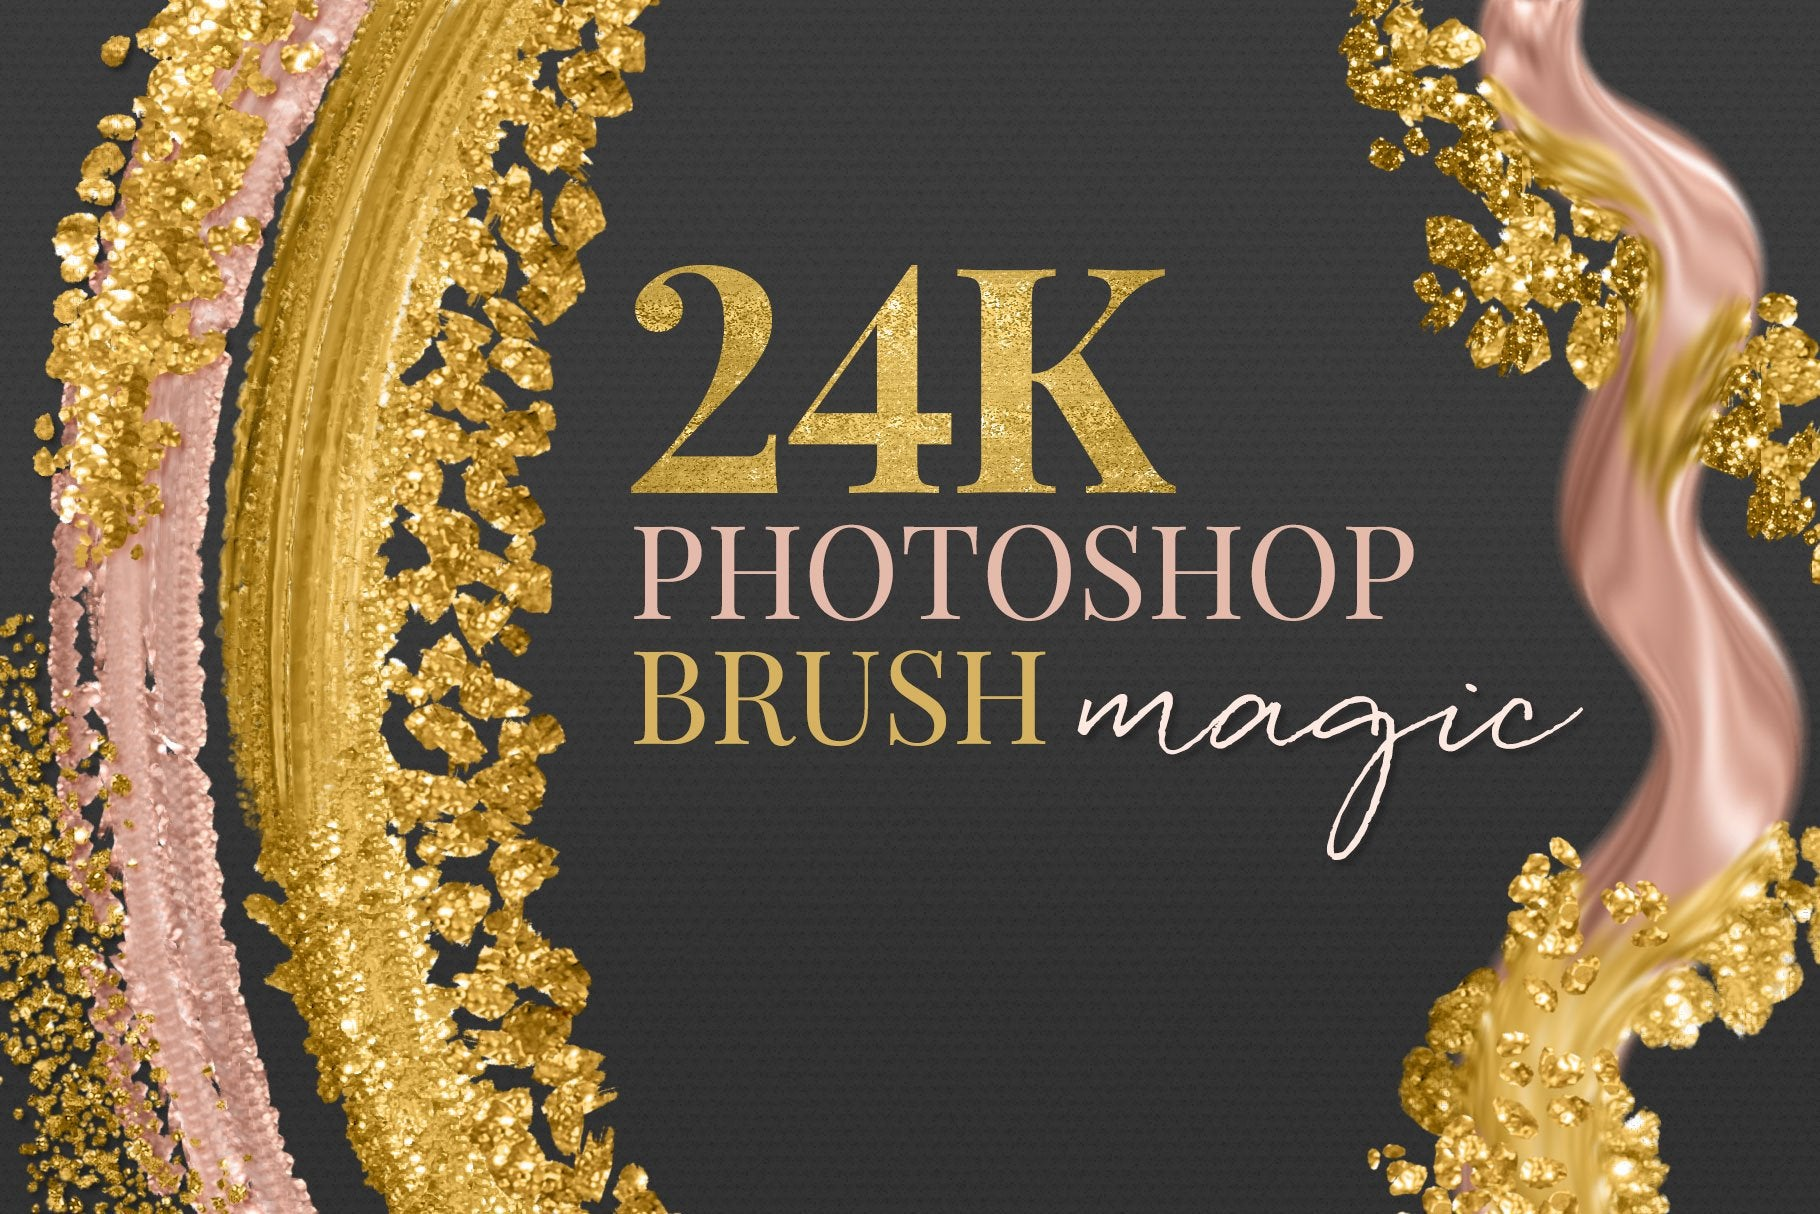 Create 24K Metallic Gold Brush Strokes & Dazzling Metallic Gold Effects with Photoshop Brushes!